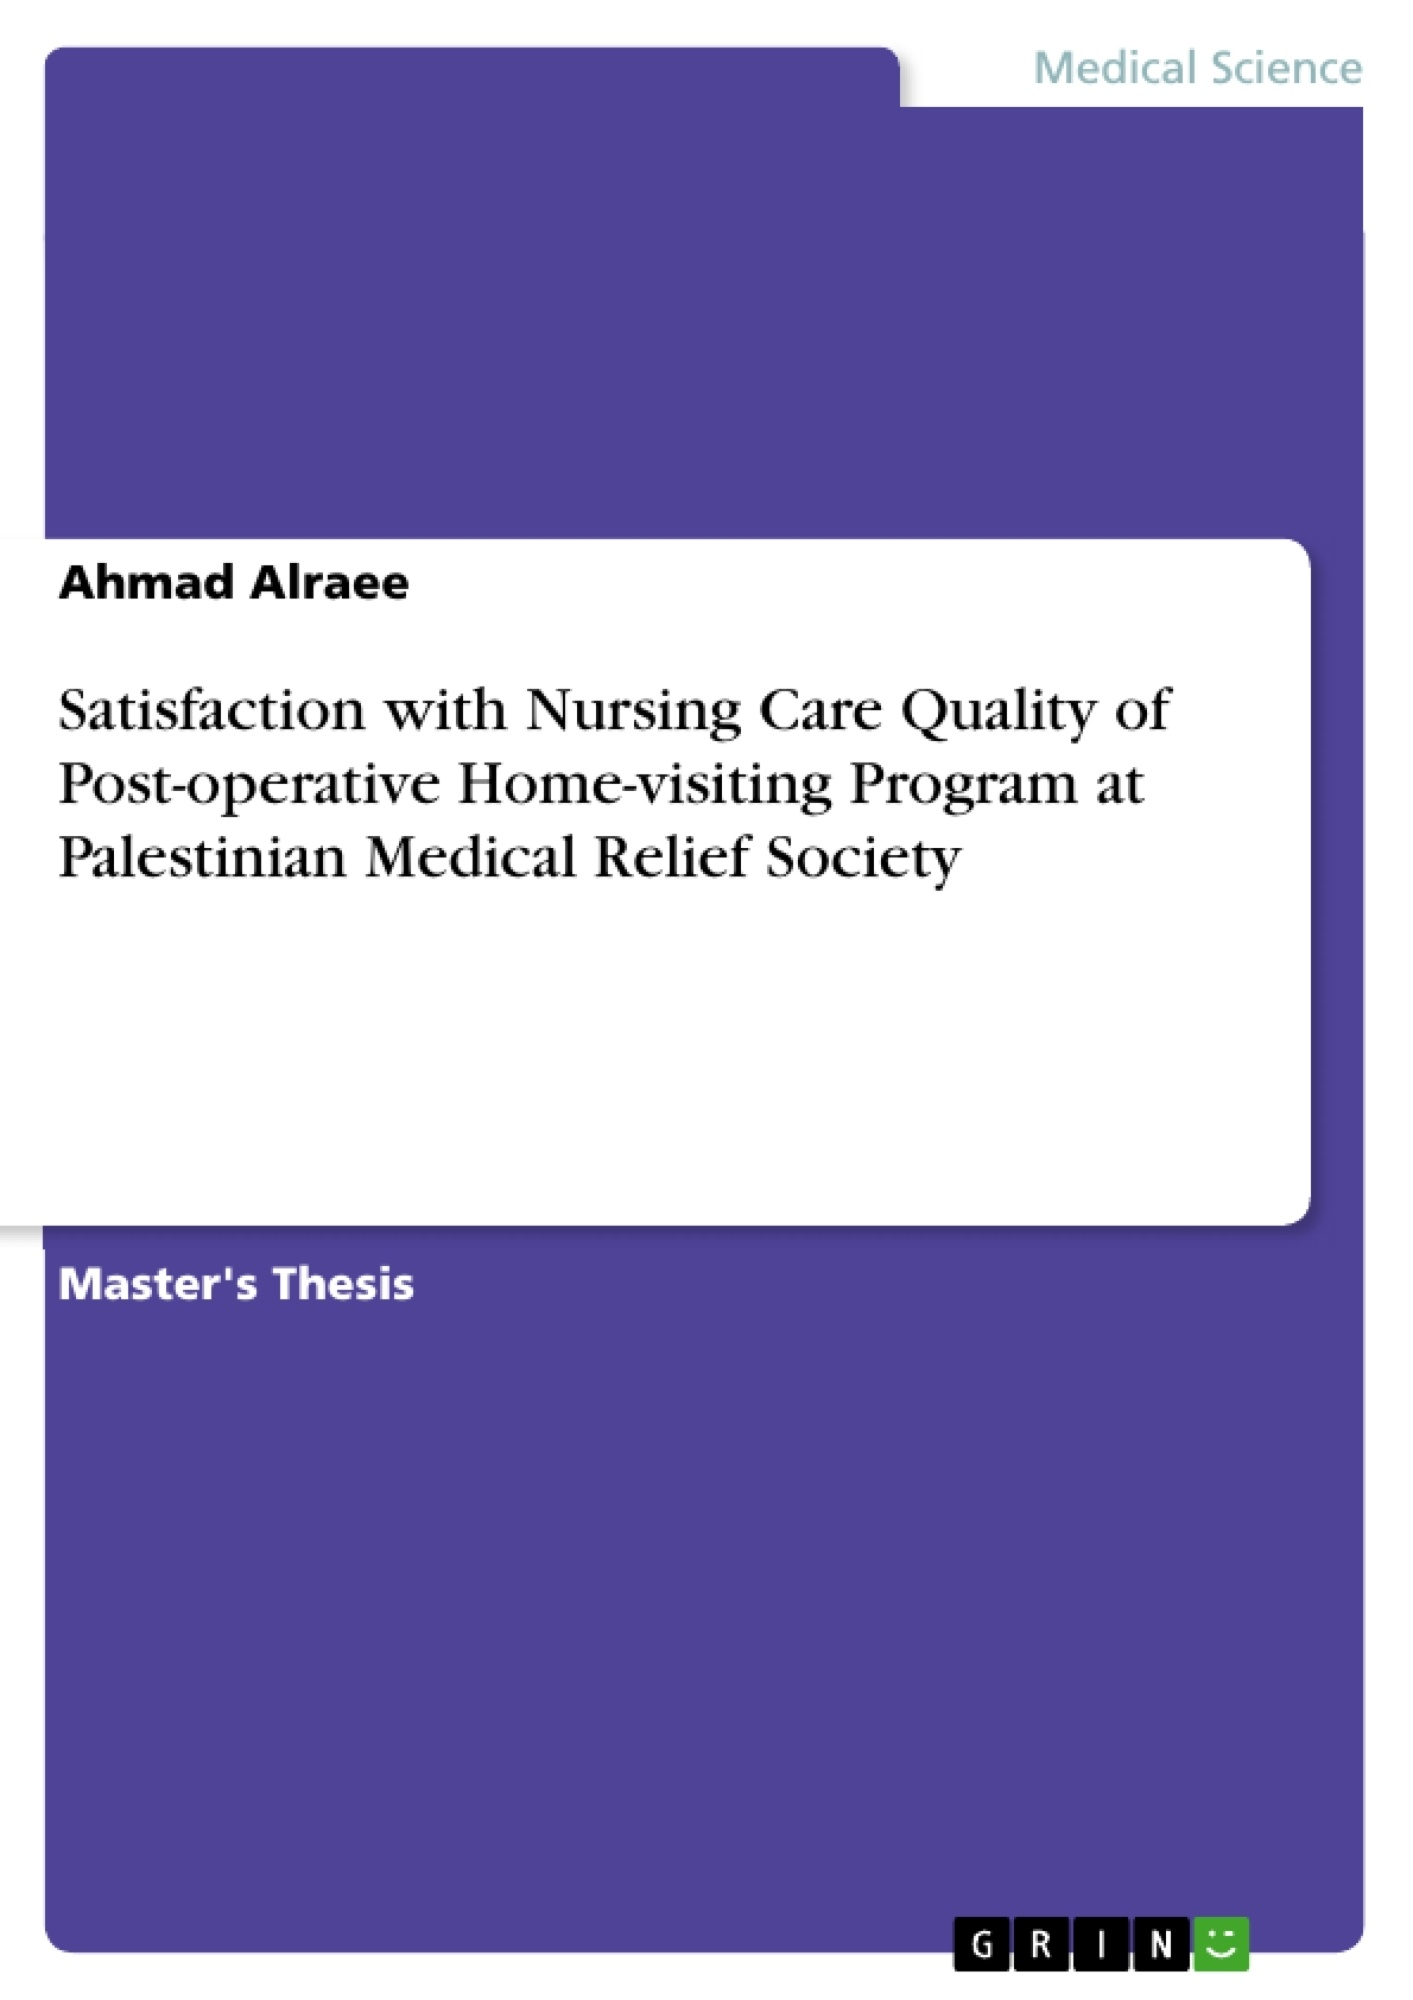 Title: Satisfaction with Nursing Care Quality of Post-operative Home-visiting Program at Palestinian Medical Relief Society